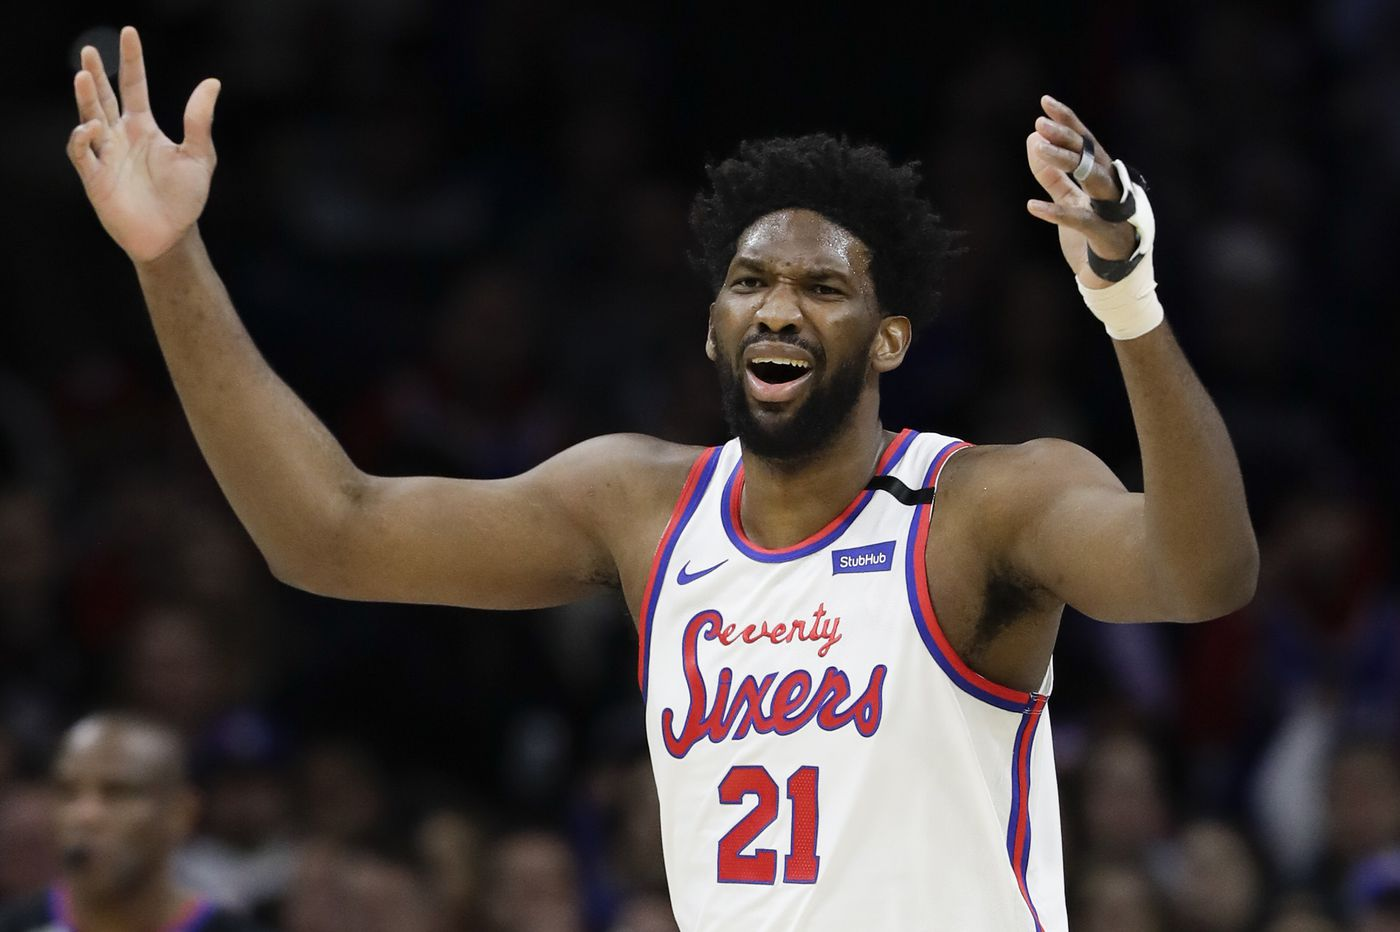 Sixers' Joel Embiid available to play tonight